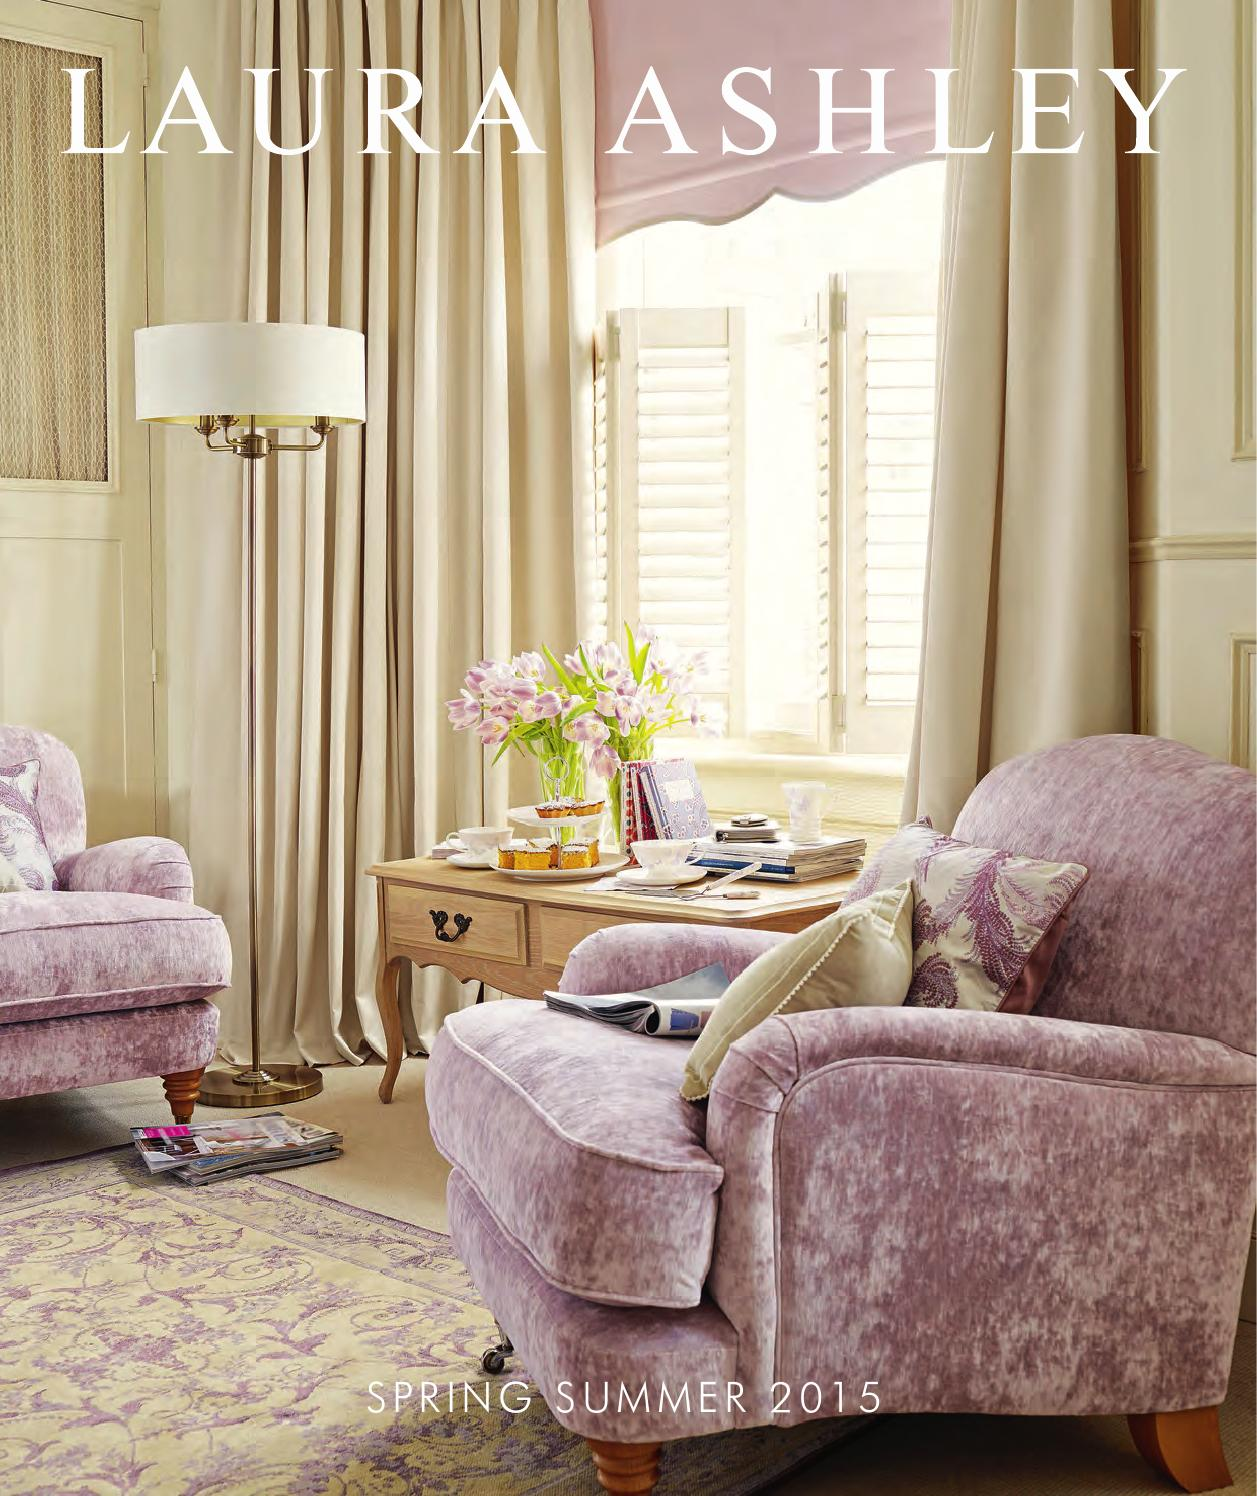 Laura ashley spring summer 2015 catalogue by stanislav - Catalogo laura ashley ...